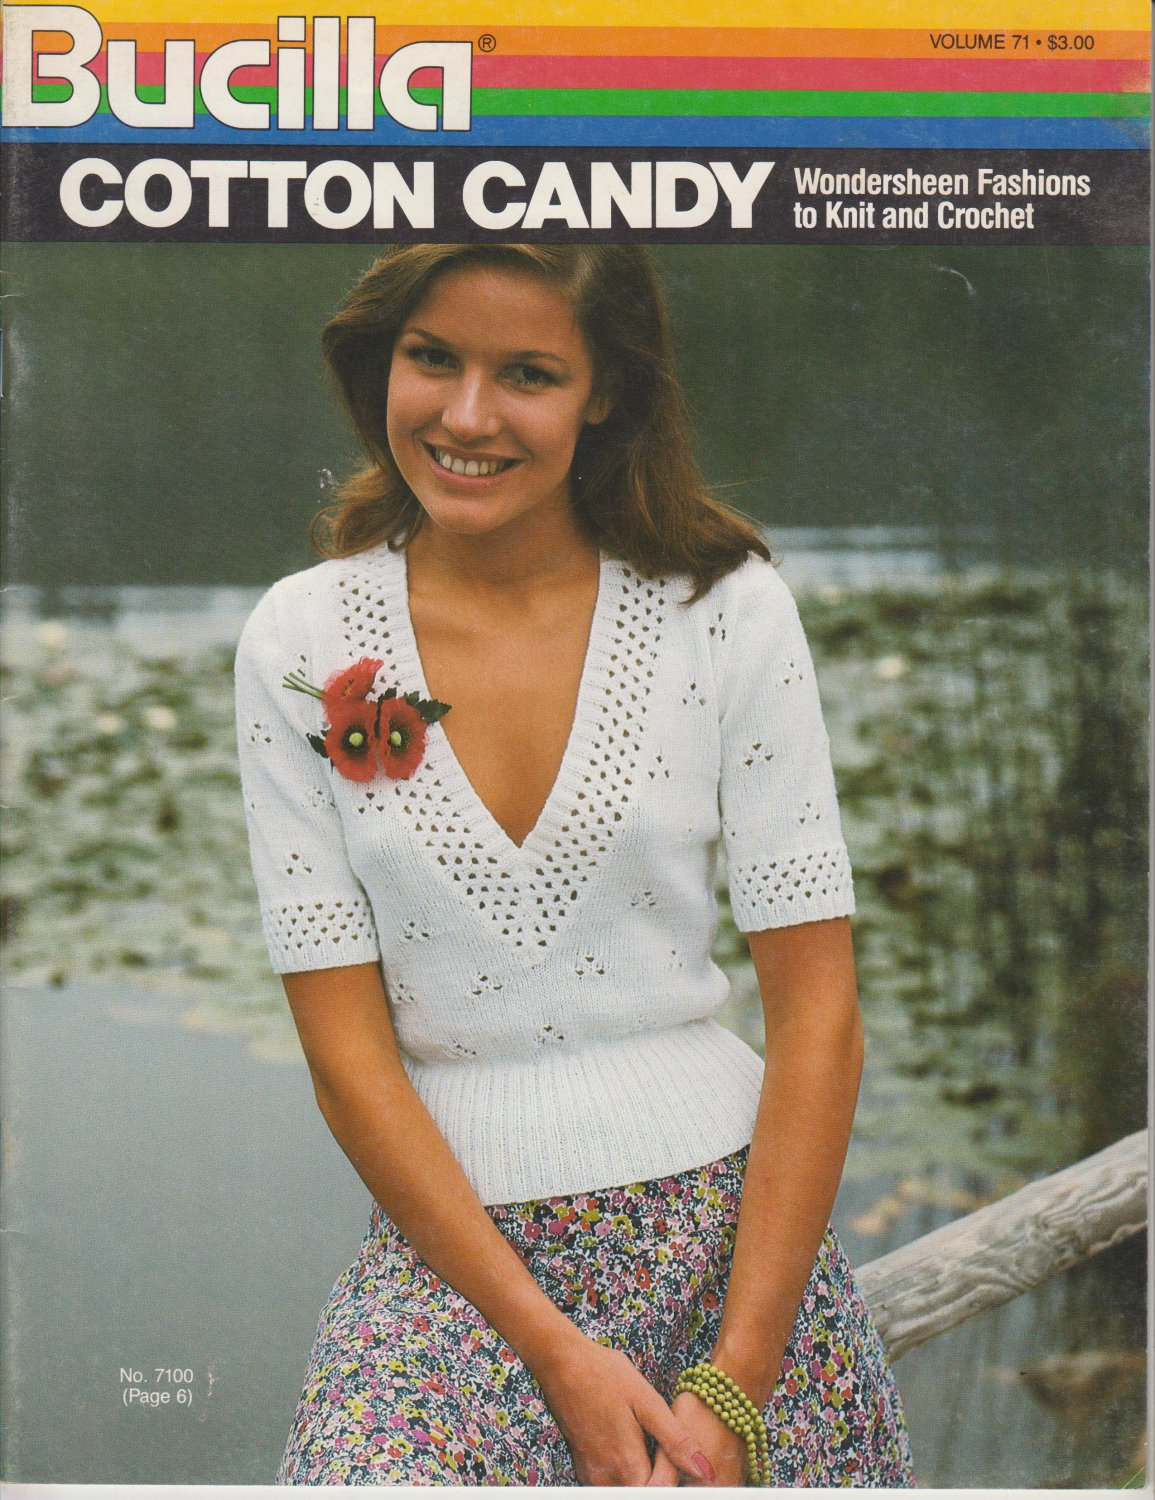 Bucilla Cotton Candy Vintage 1983 Knitting and Crochet Pattern Booklet Volume 71